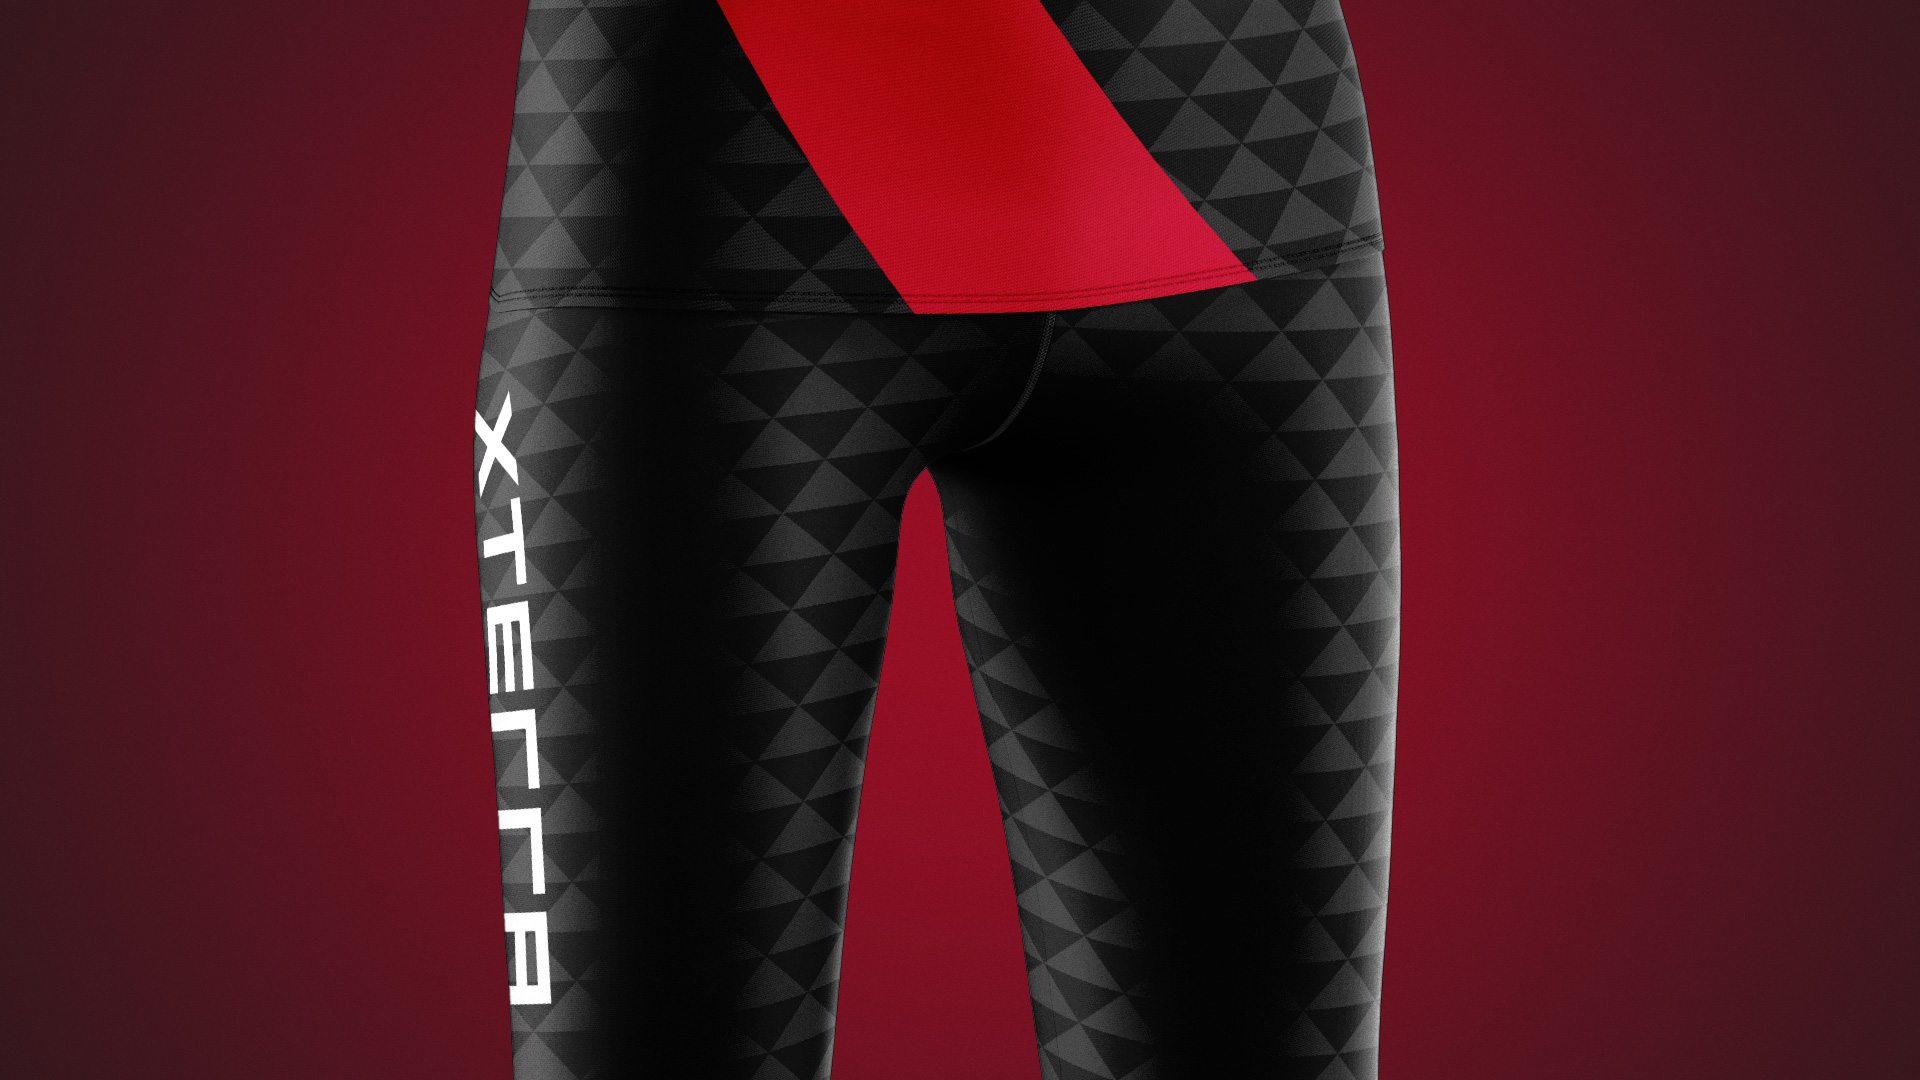 XTERRA - Womens Fitness Apparel - Zoom - LowerBody